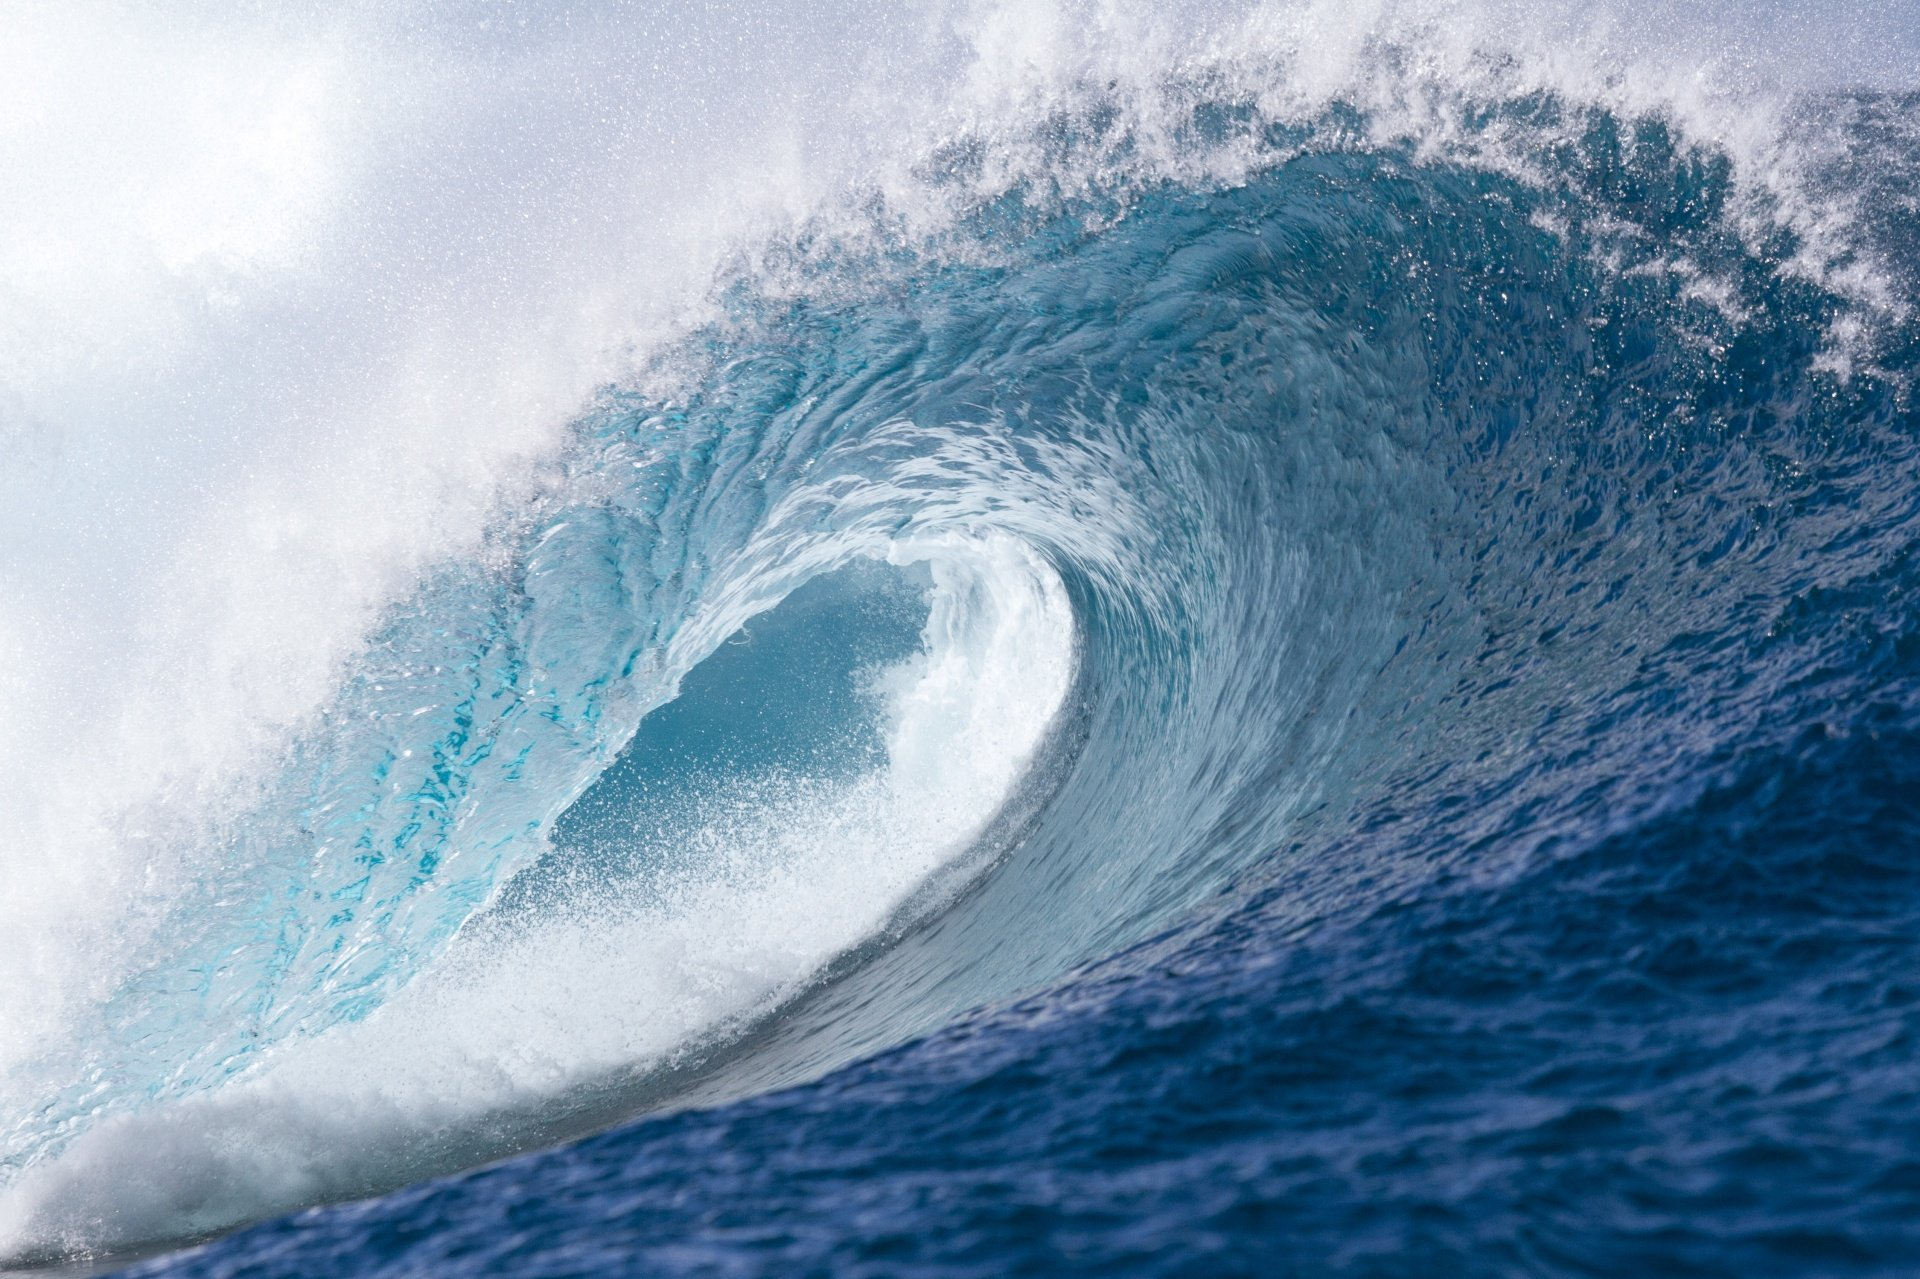 Josh Trevarthen's photo of Teahupoo